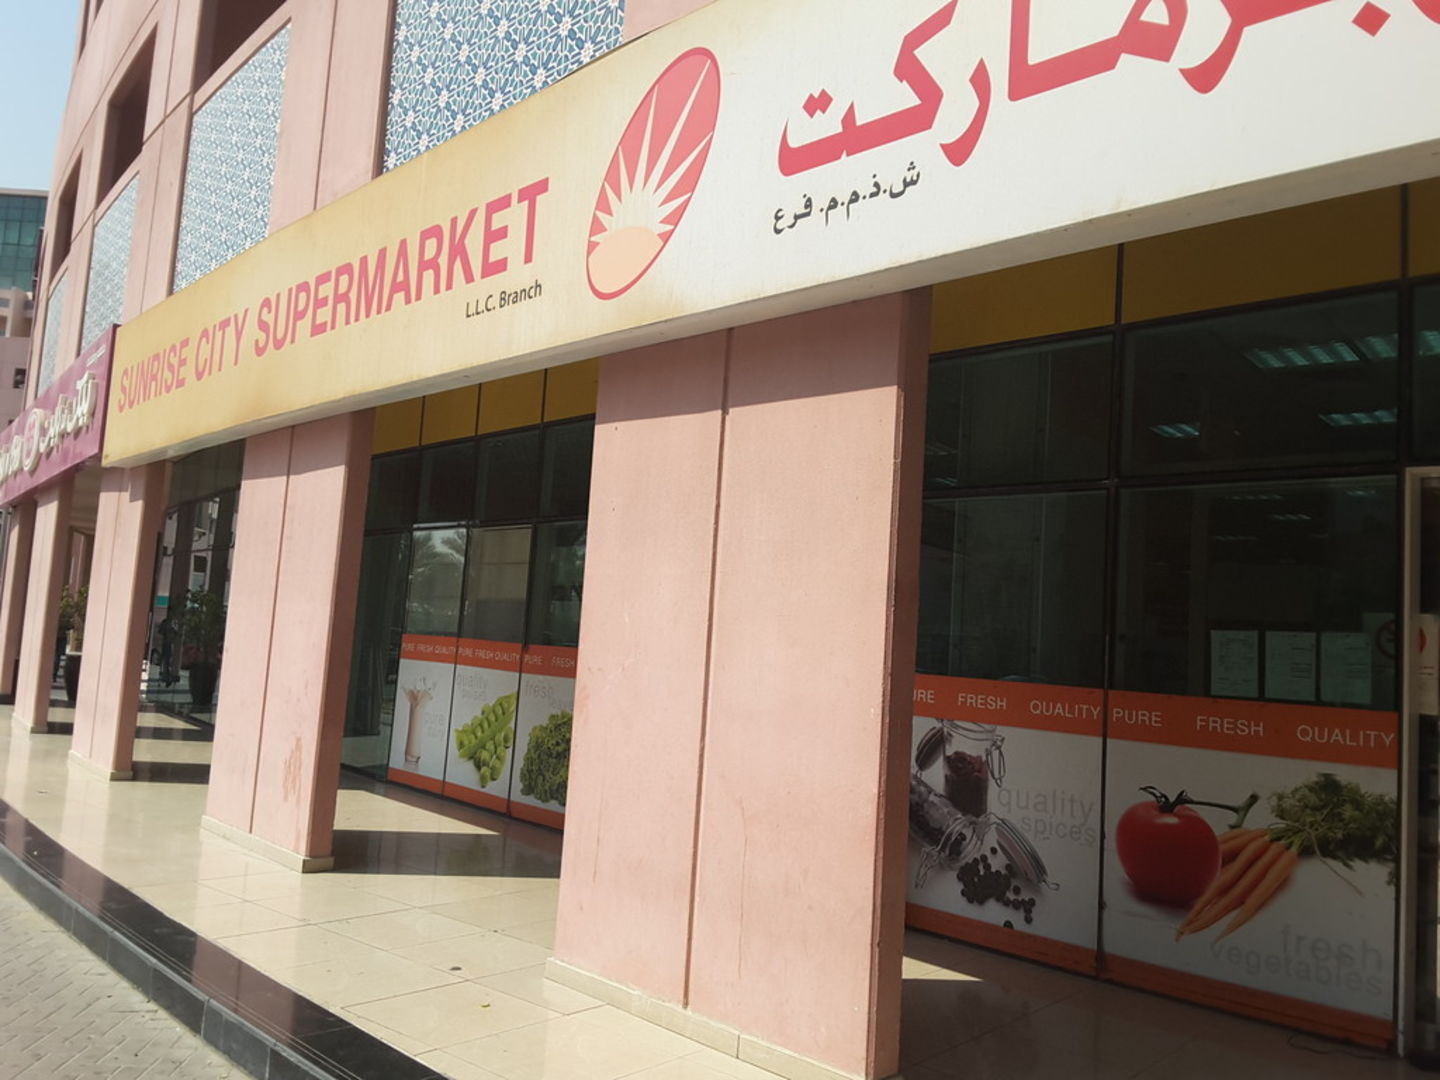 HiDubai-business-sunrise-city-supermarket-shopping-supermarkets-hypermarkets-grocery-stores-discovery-gardens-jebel-ali-1-dubai-5